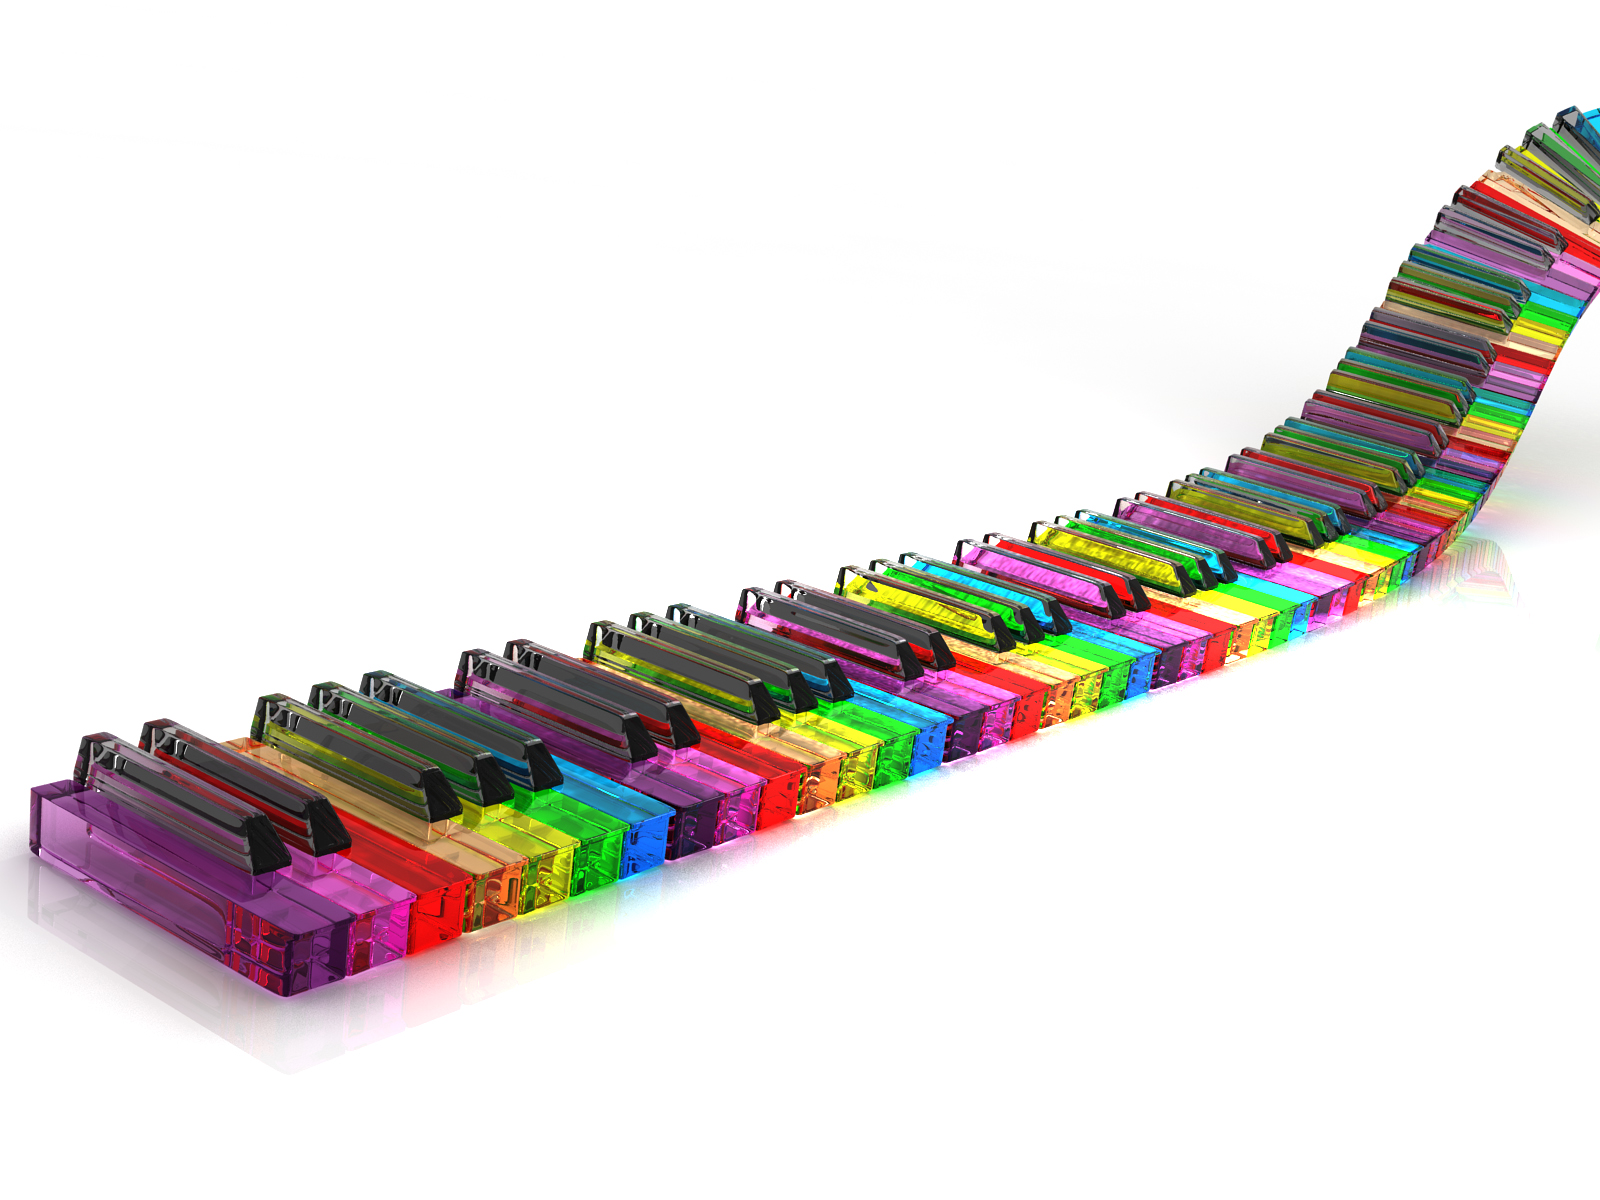 http://4.bp.blogspot.com/-T5b7nWUnXDw/T1BC88NEp1I/AAAAAAAACco/raSy-AvEGnQ/s1600/full-colours-Piano-tuts-glass-wallpapers.jpg